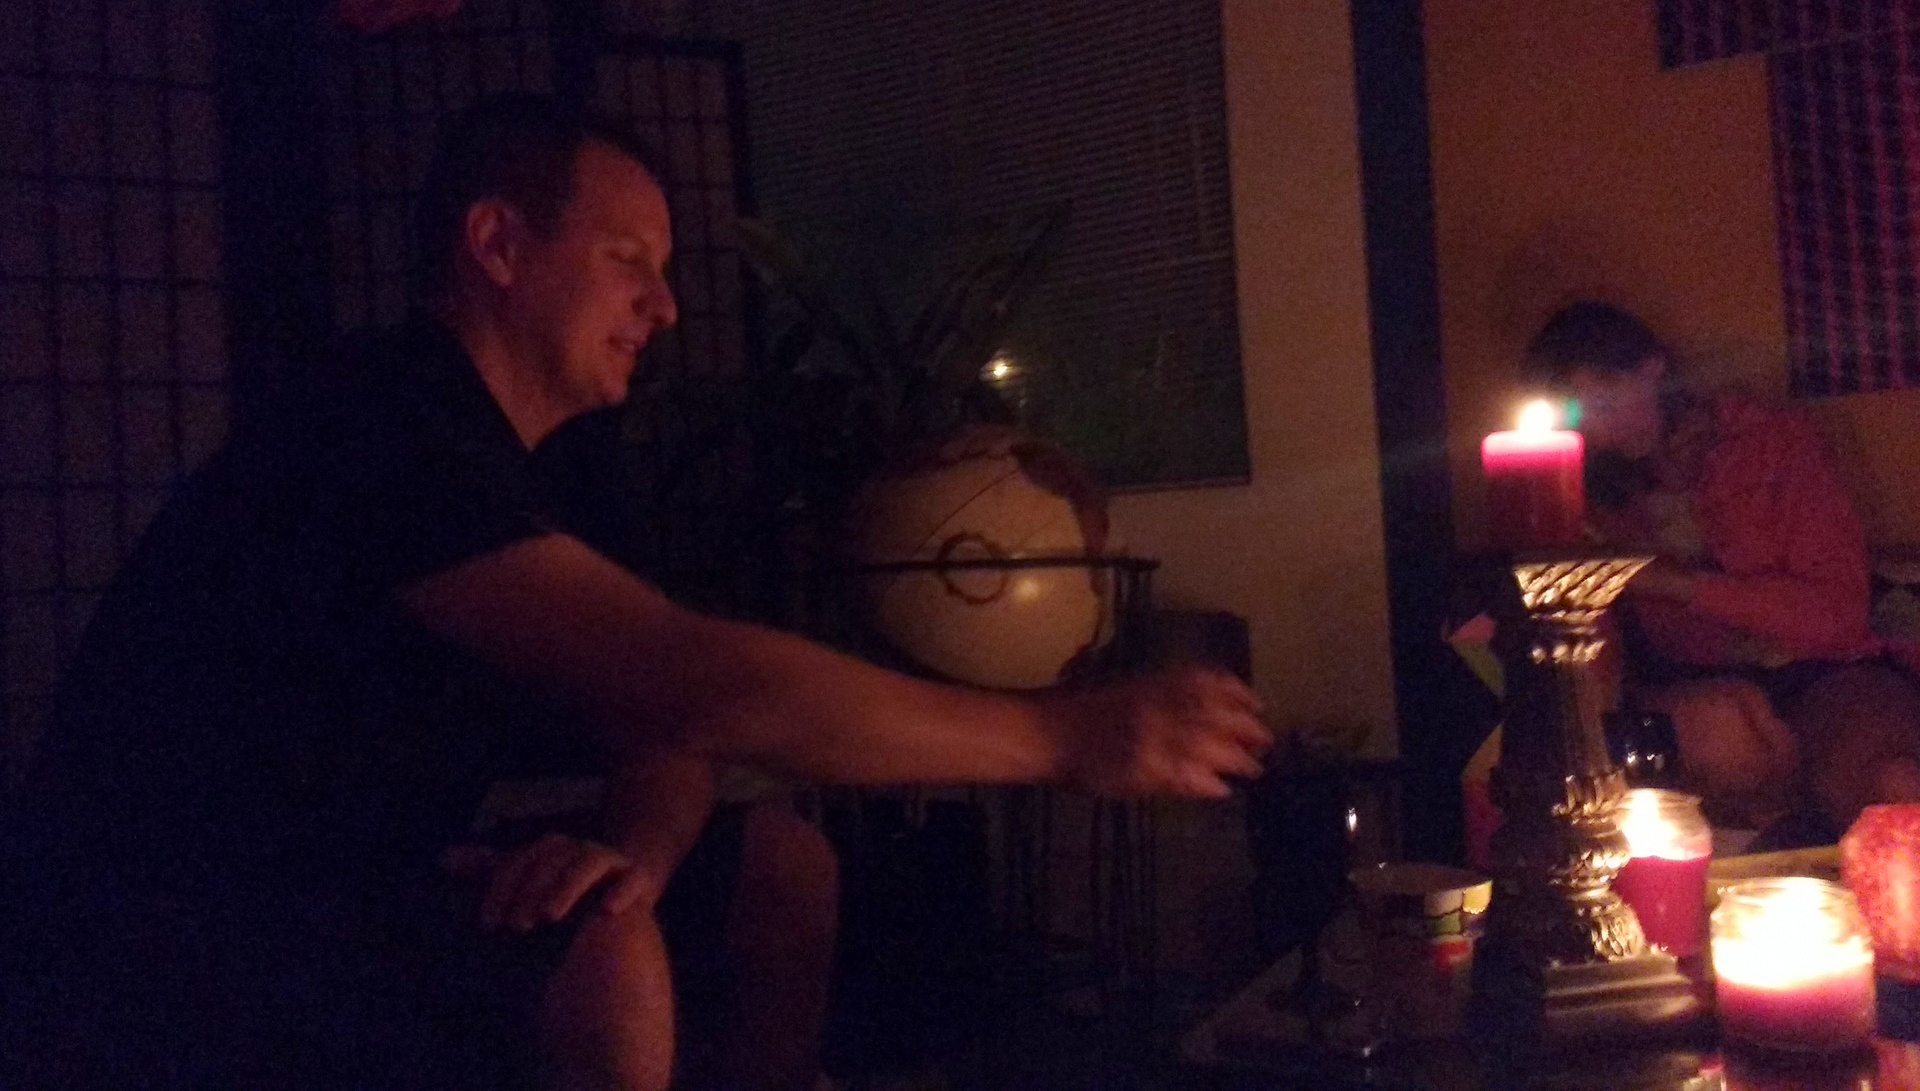 2 people drinking wine by candlelight